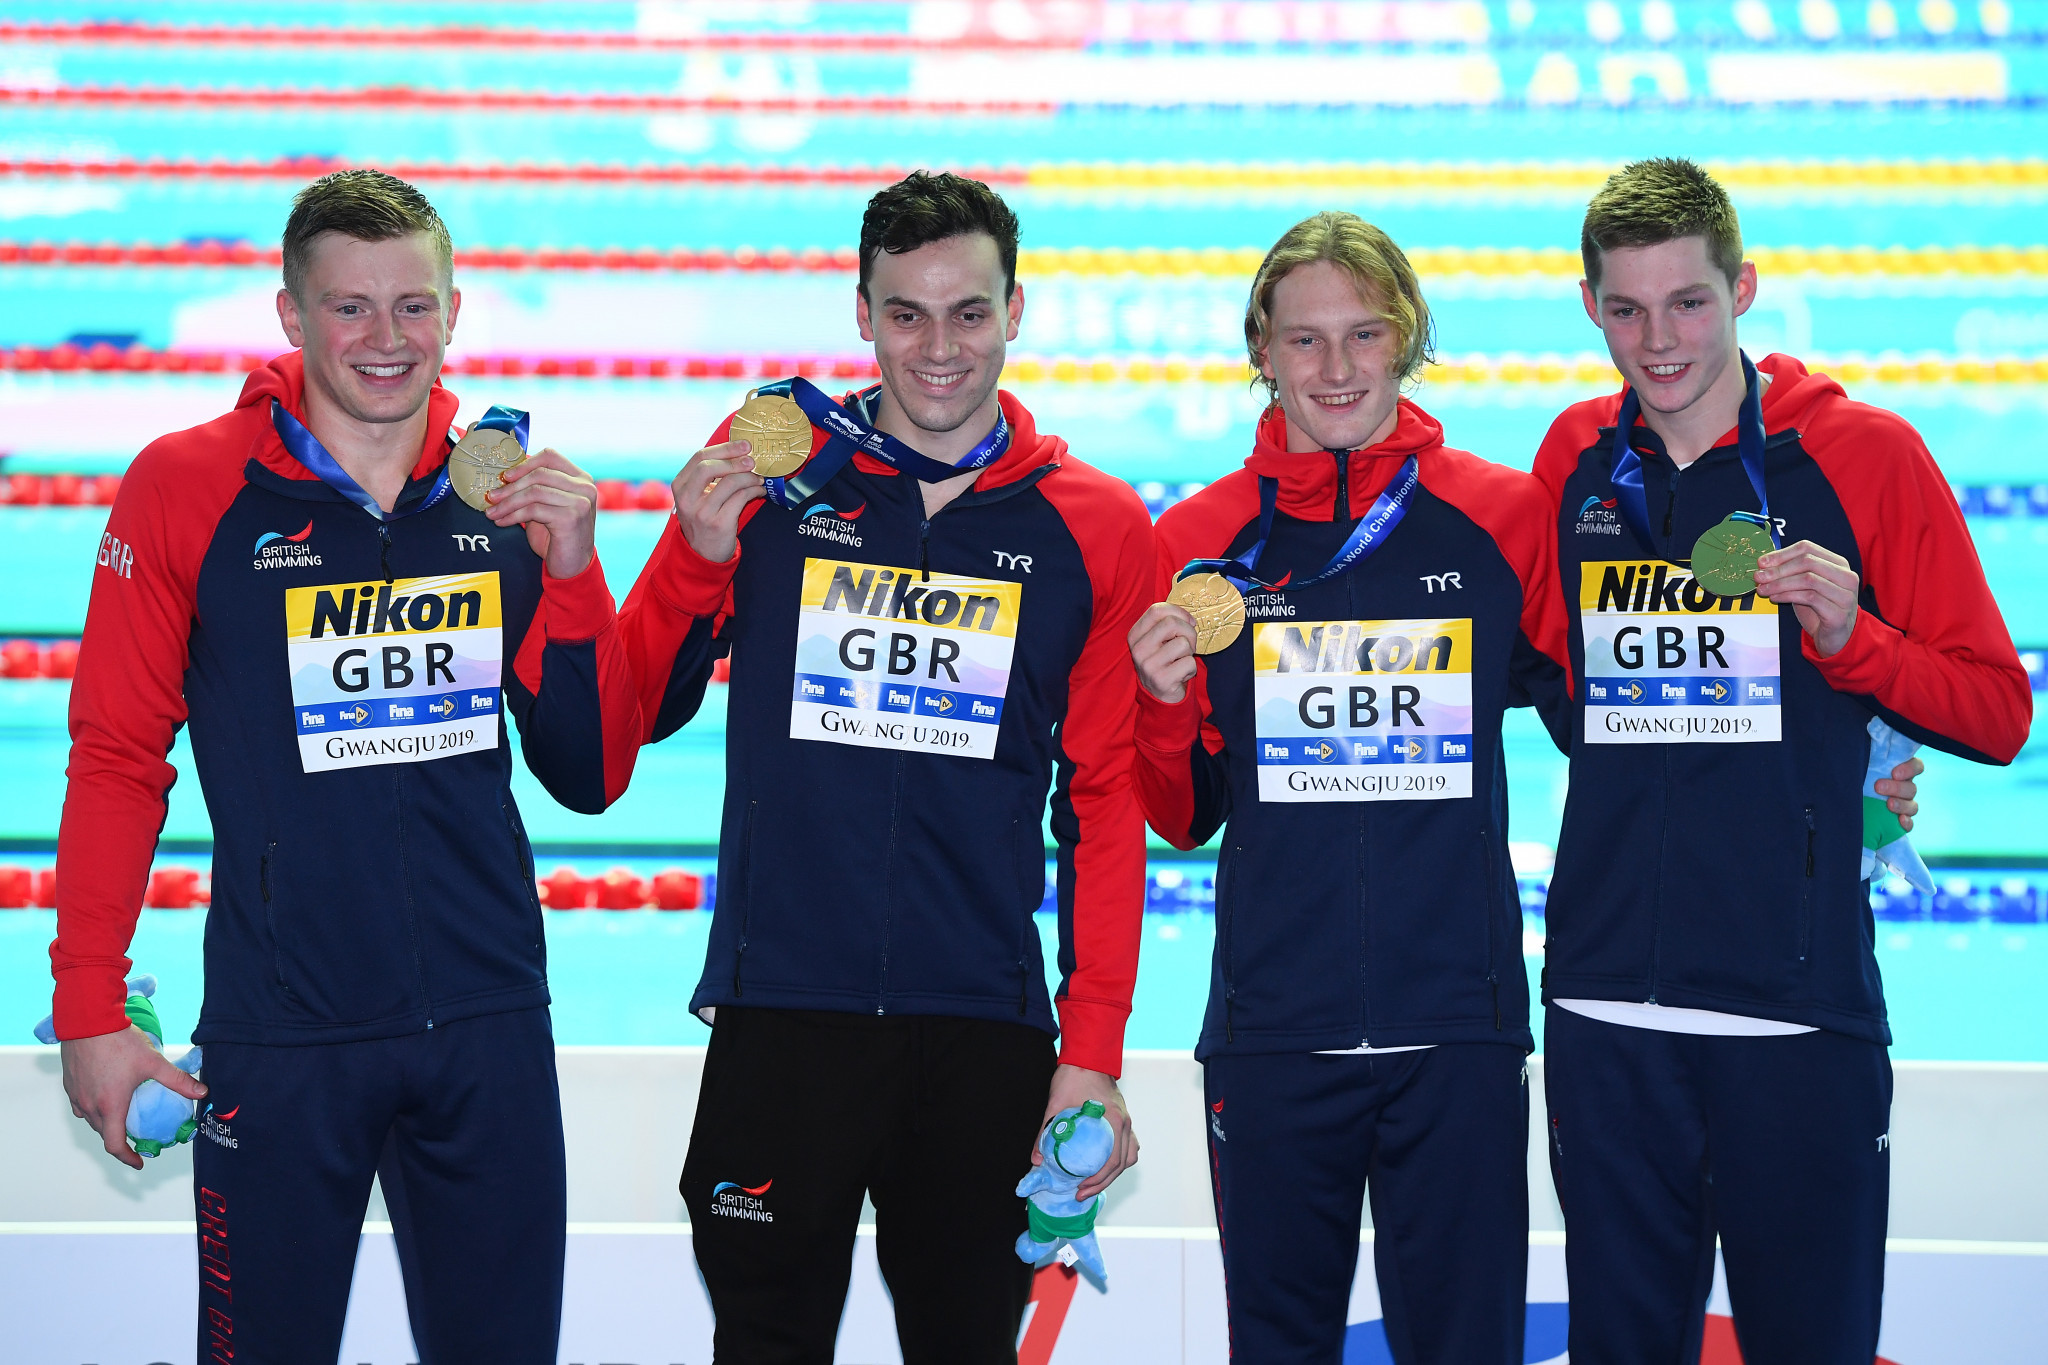 Adam Peaty, James Guy, Luke Greenbank and Duncan Scott won gold in the men's 4x100m medley relay at the 2019 World Championships ©Getty Images